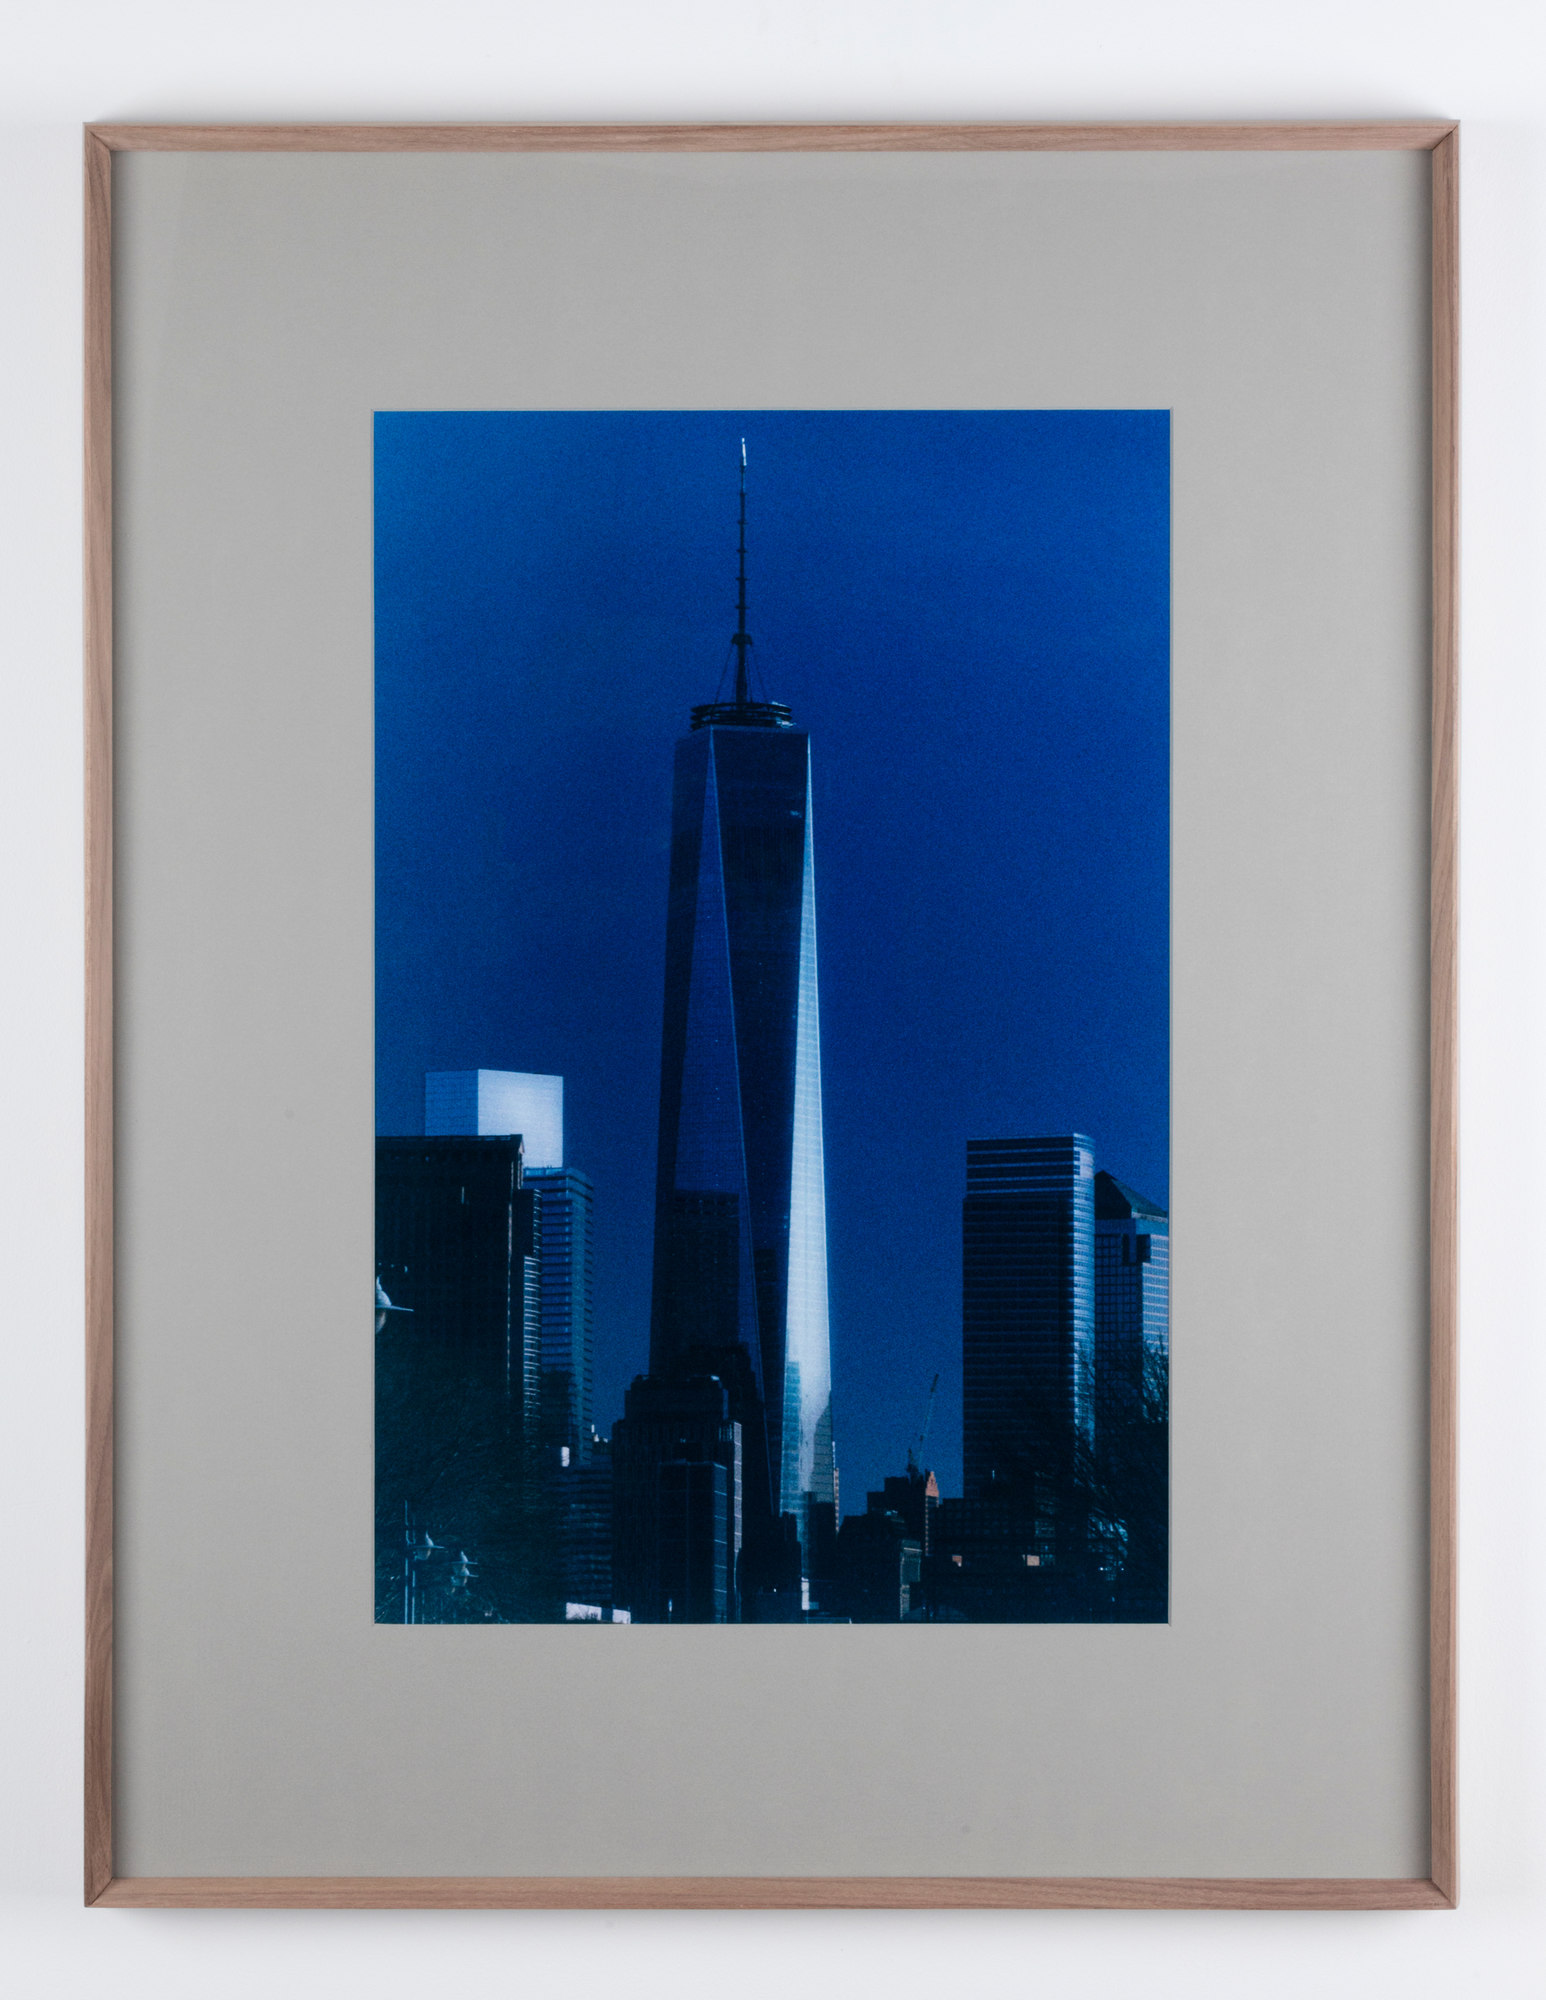 22.Oto_Gillen_Tomorrow_WTC_2015_2000